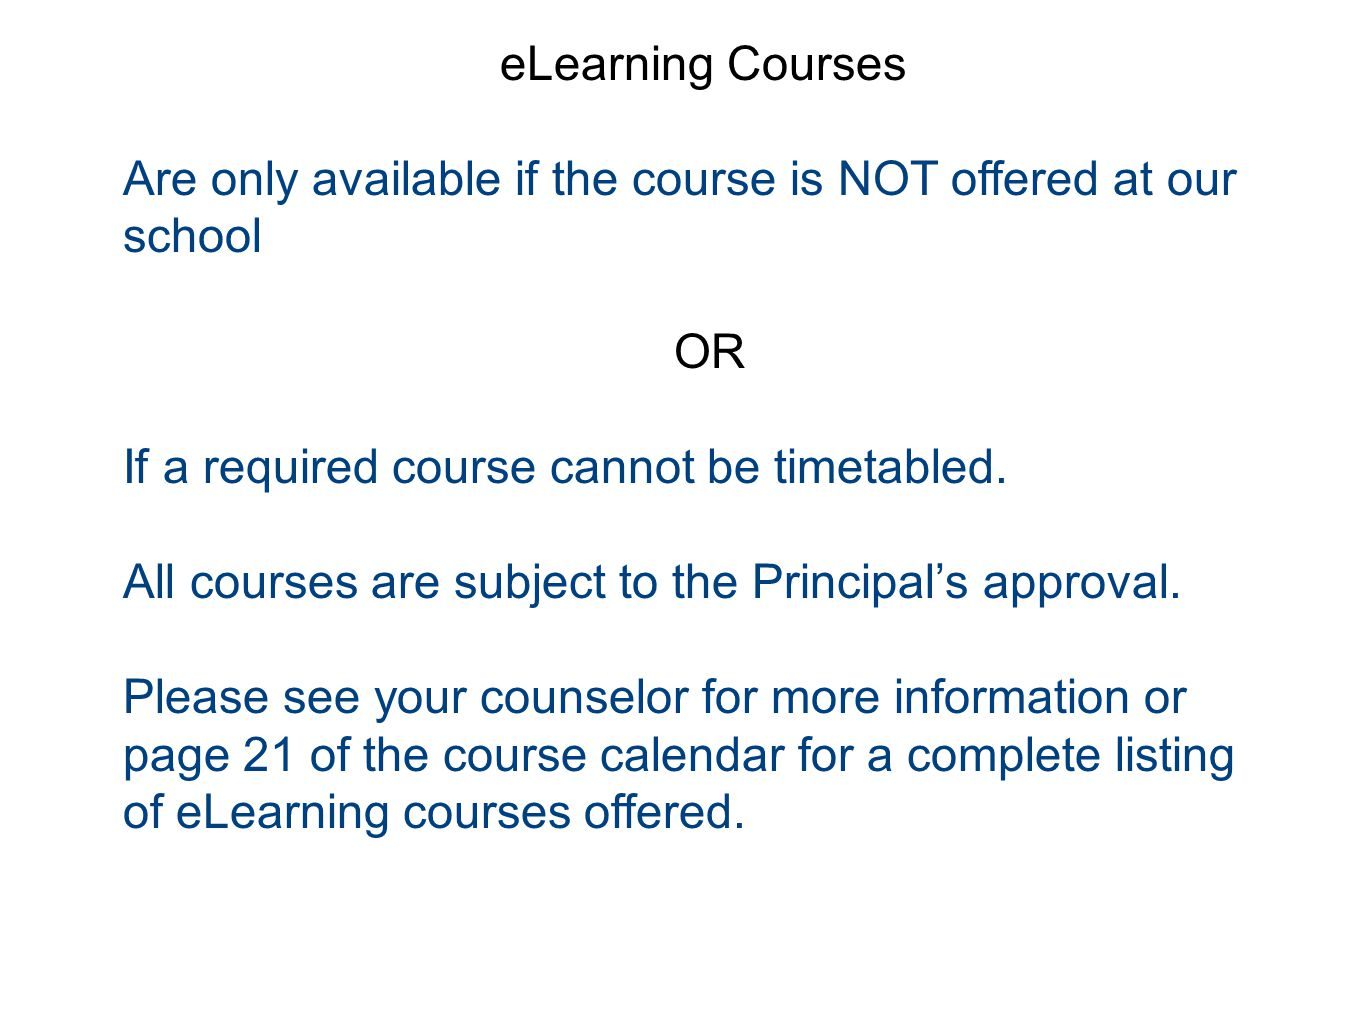 eLearning Courses Are only available if the course is NOT offered at our school OR If a required course cannot be timetabled. All courses are subject